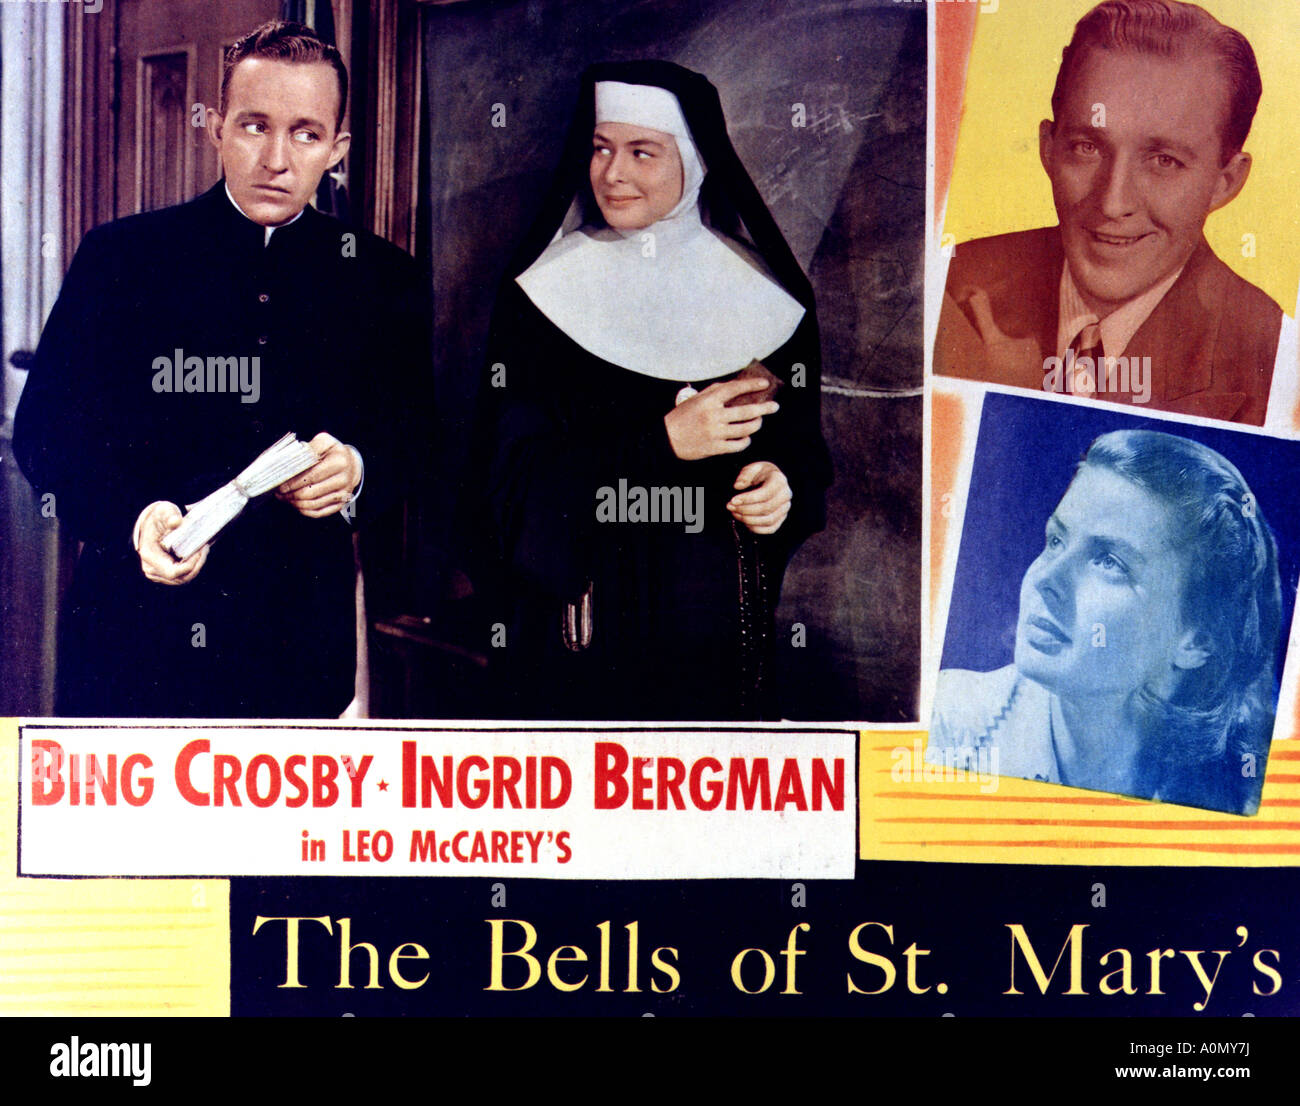 BELLS OF ST MARY'S 1945 RKO film with Bing Crosby and Ingrid Bergman - Stock Image